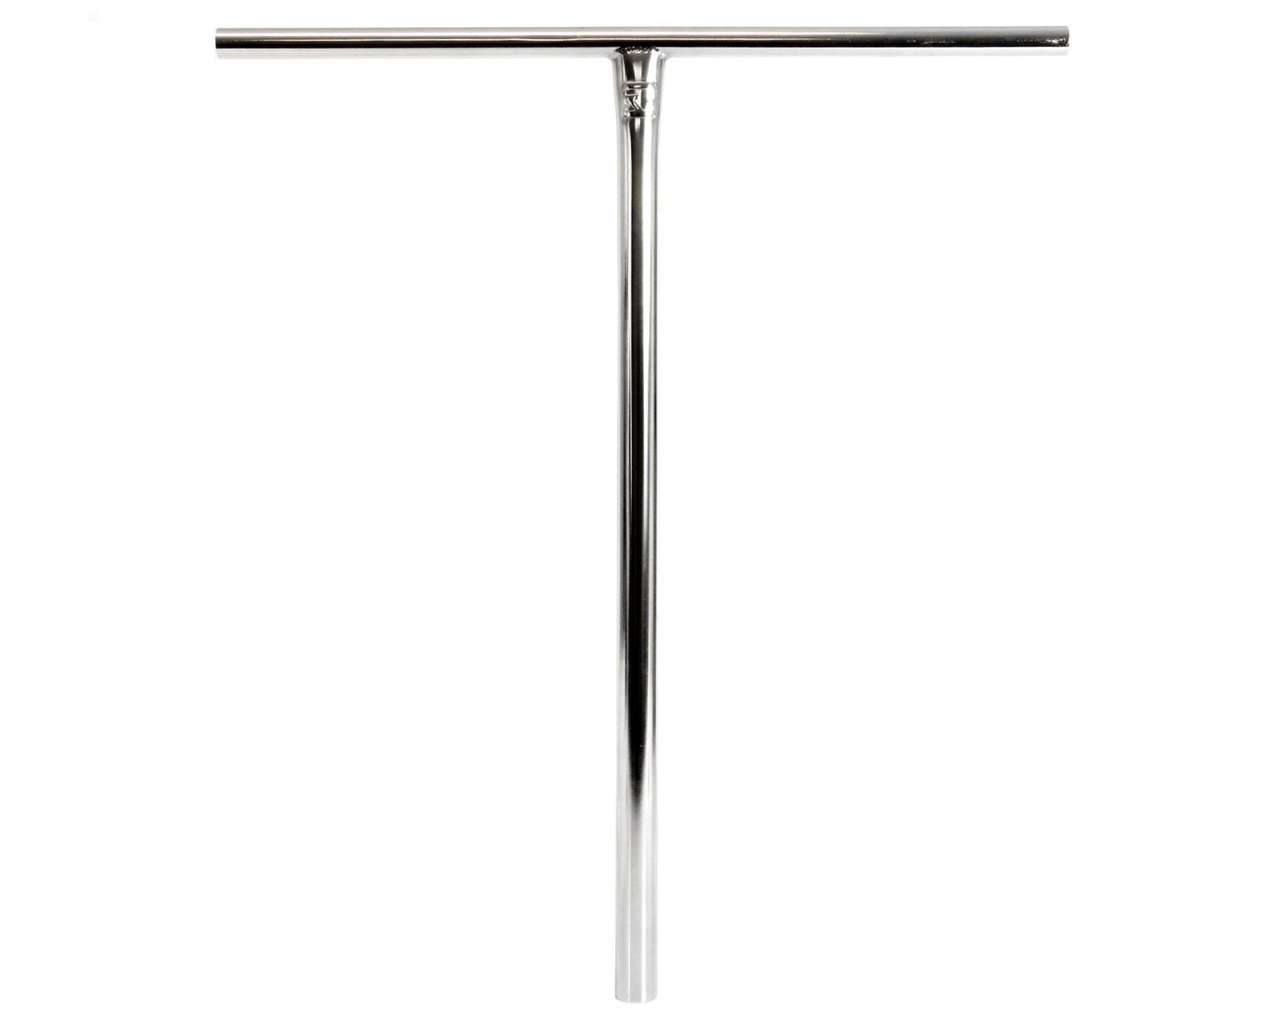 Root industries Oversized Trottinette Freestyle T-Barre 610mm - Mirror